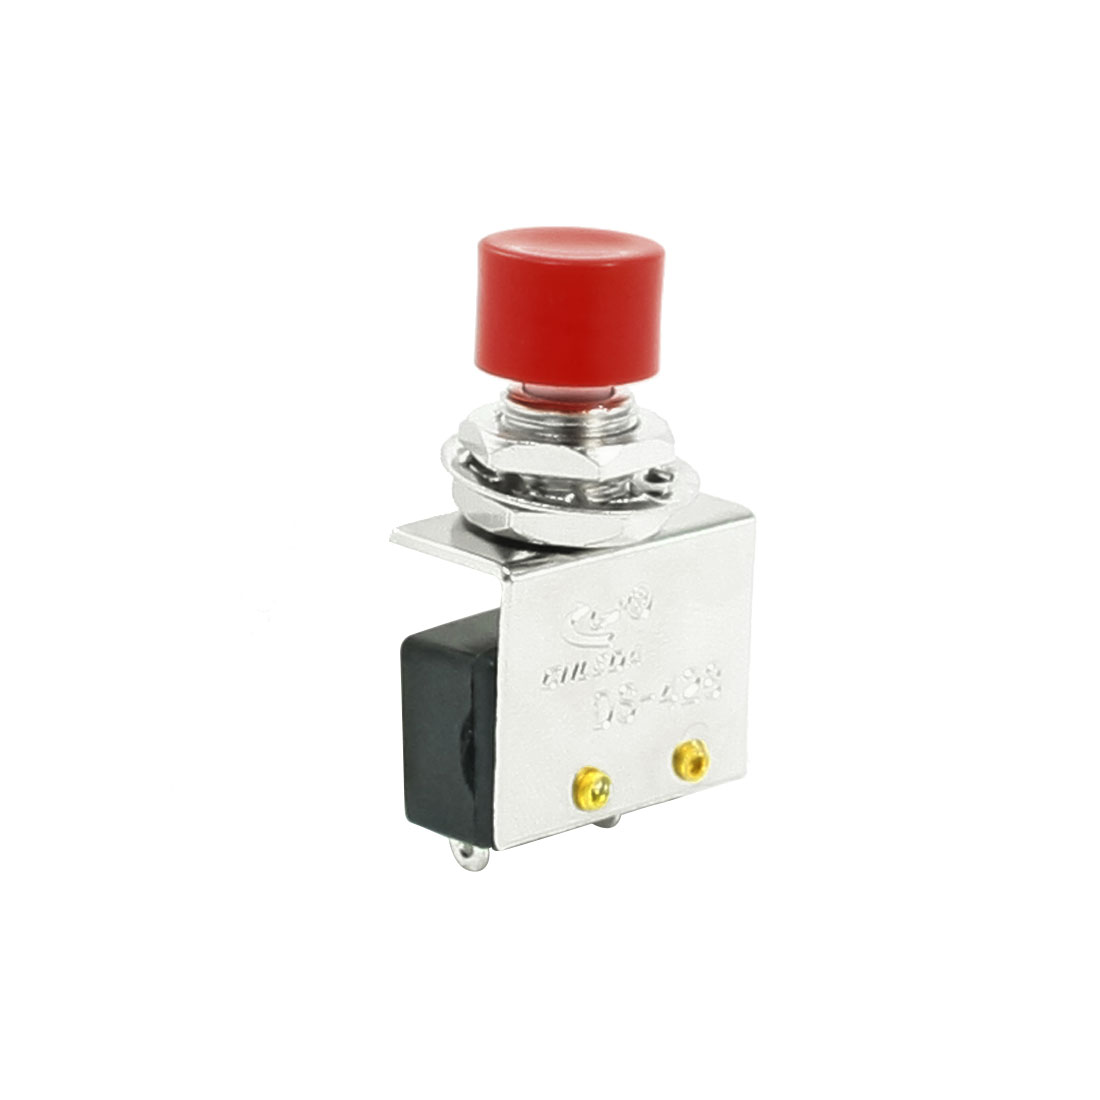 8mm Thread Dia Momentary 1 NO Red Cap Push Button Switch AC 250V 3A